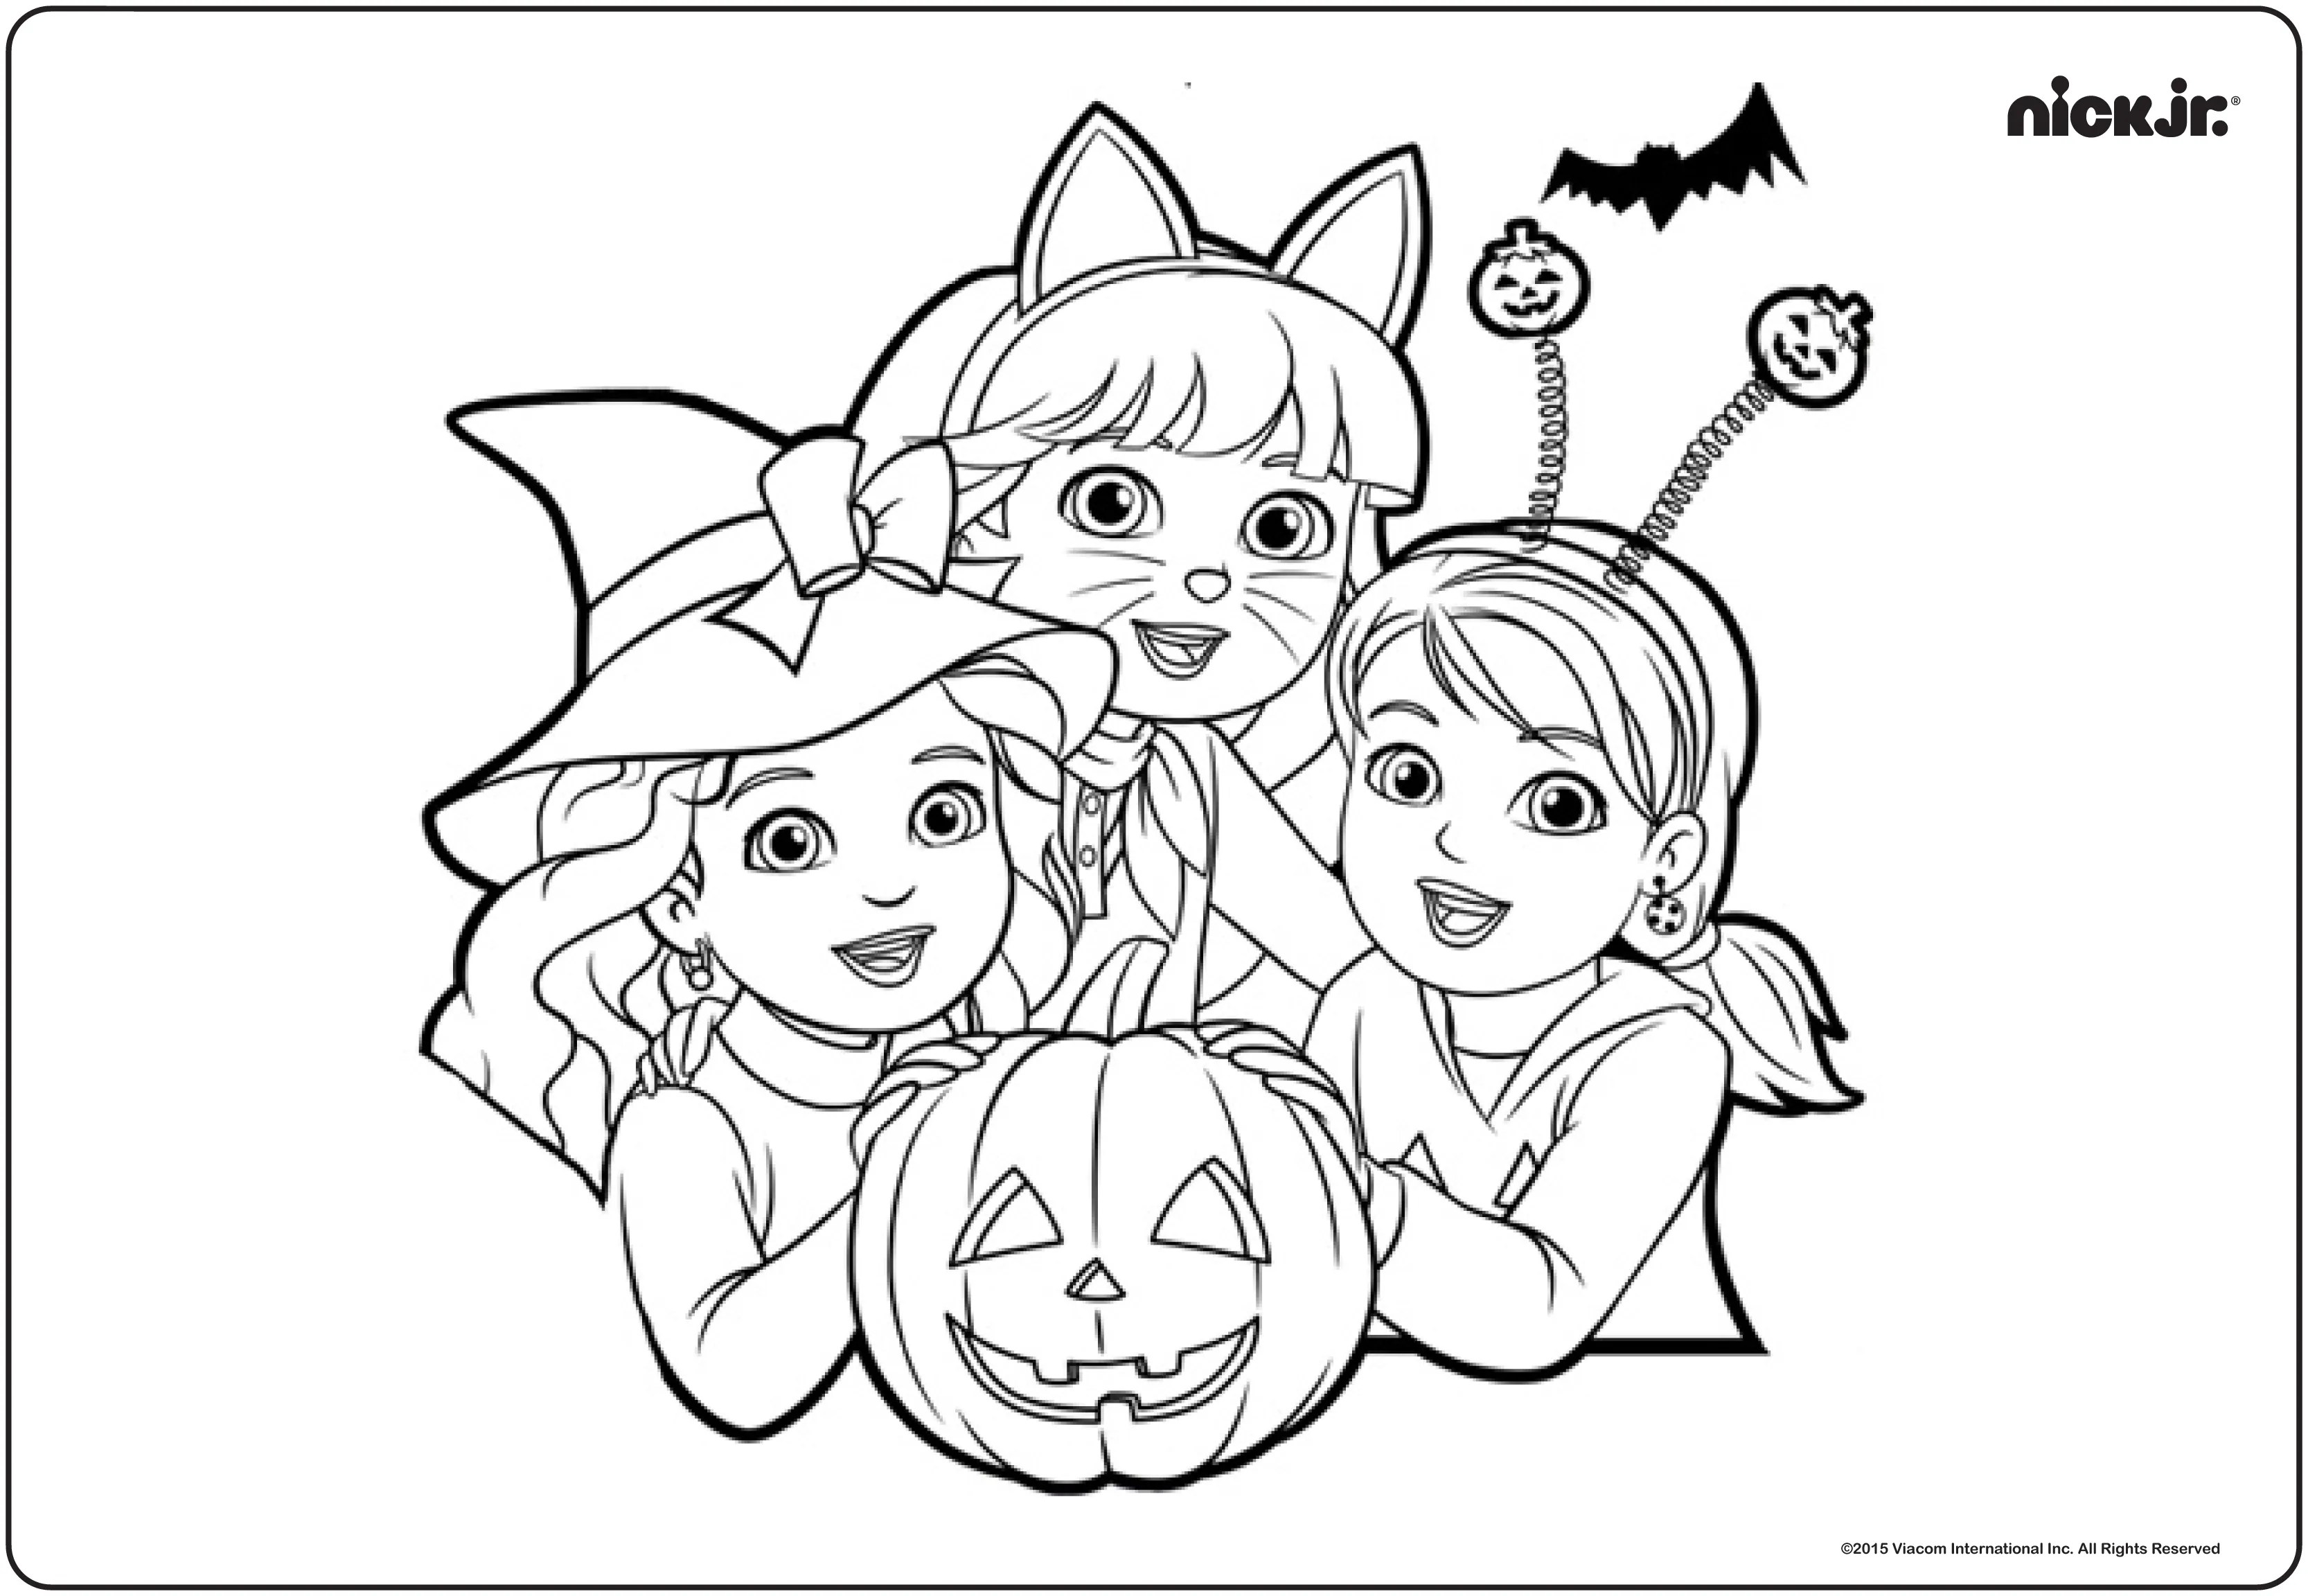 Nick Jr Halloween colouring page